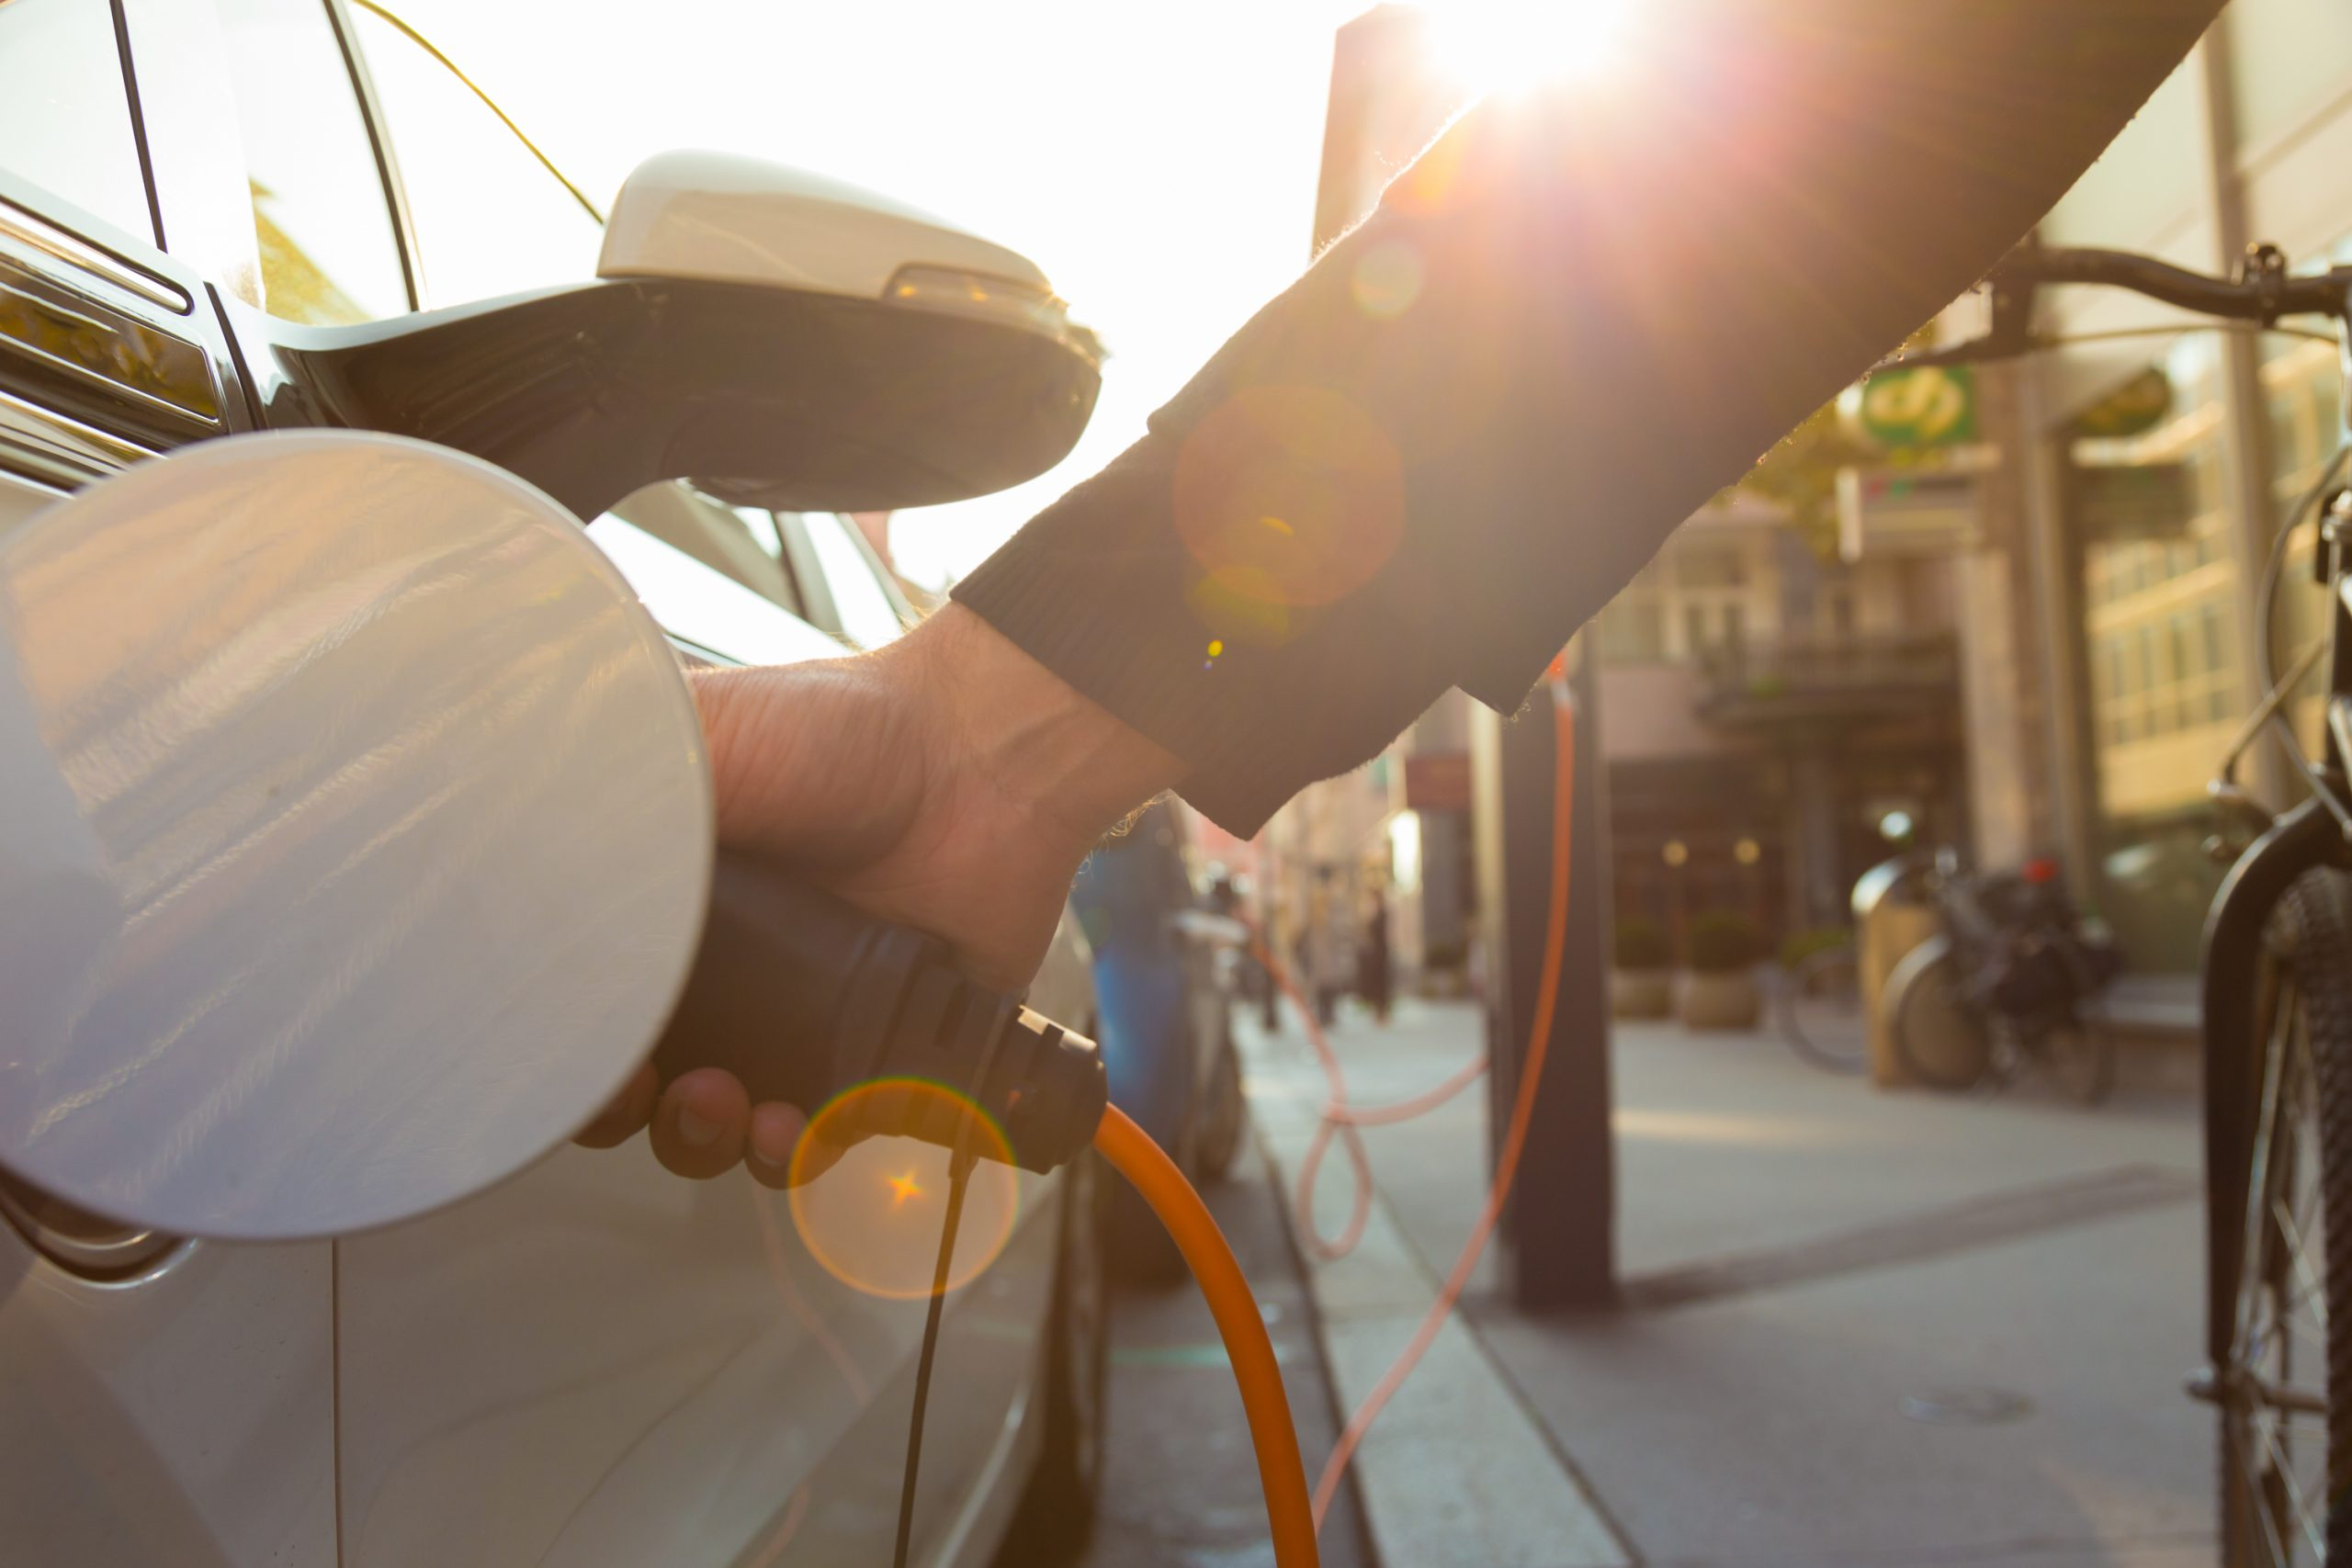 SAVE THE DATE: Boosting zero emissions mobility through electric charging infrastructure